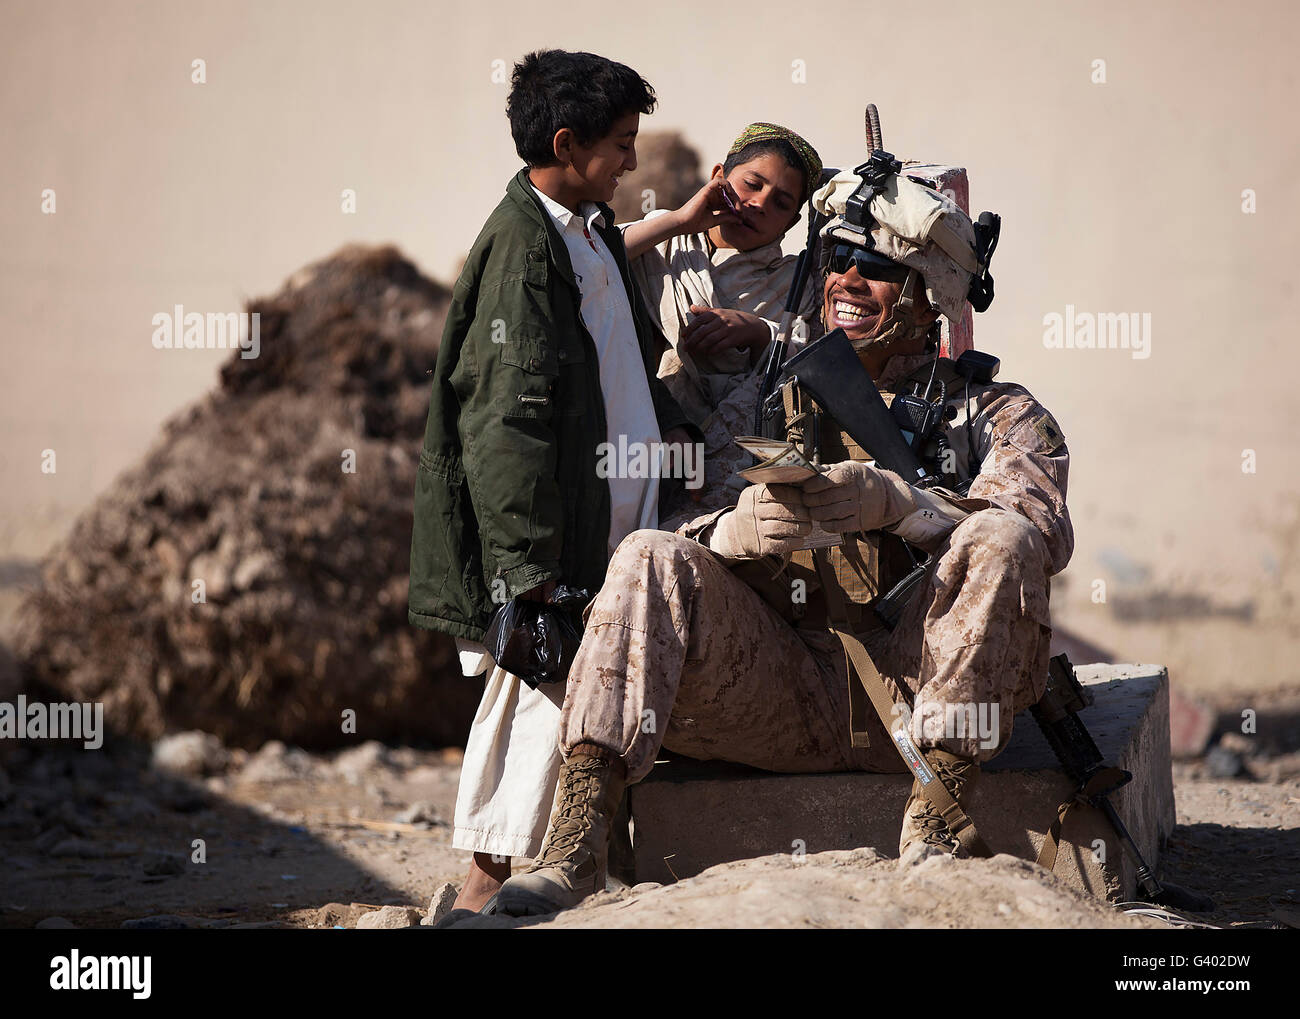 U.S. Marine practices Pashto with Afghan boys in Afghanistan. - Stock Image